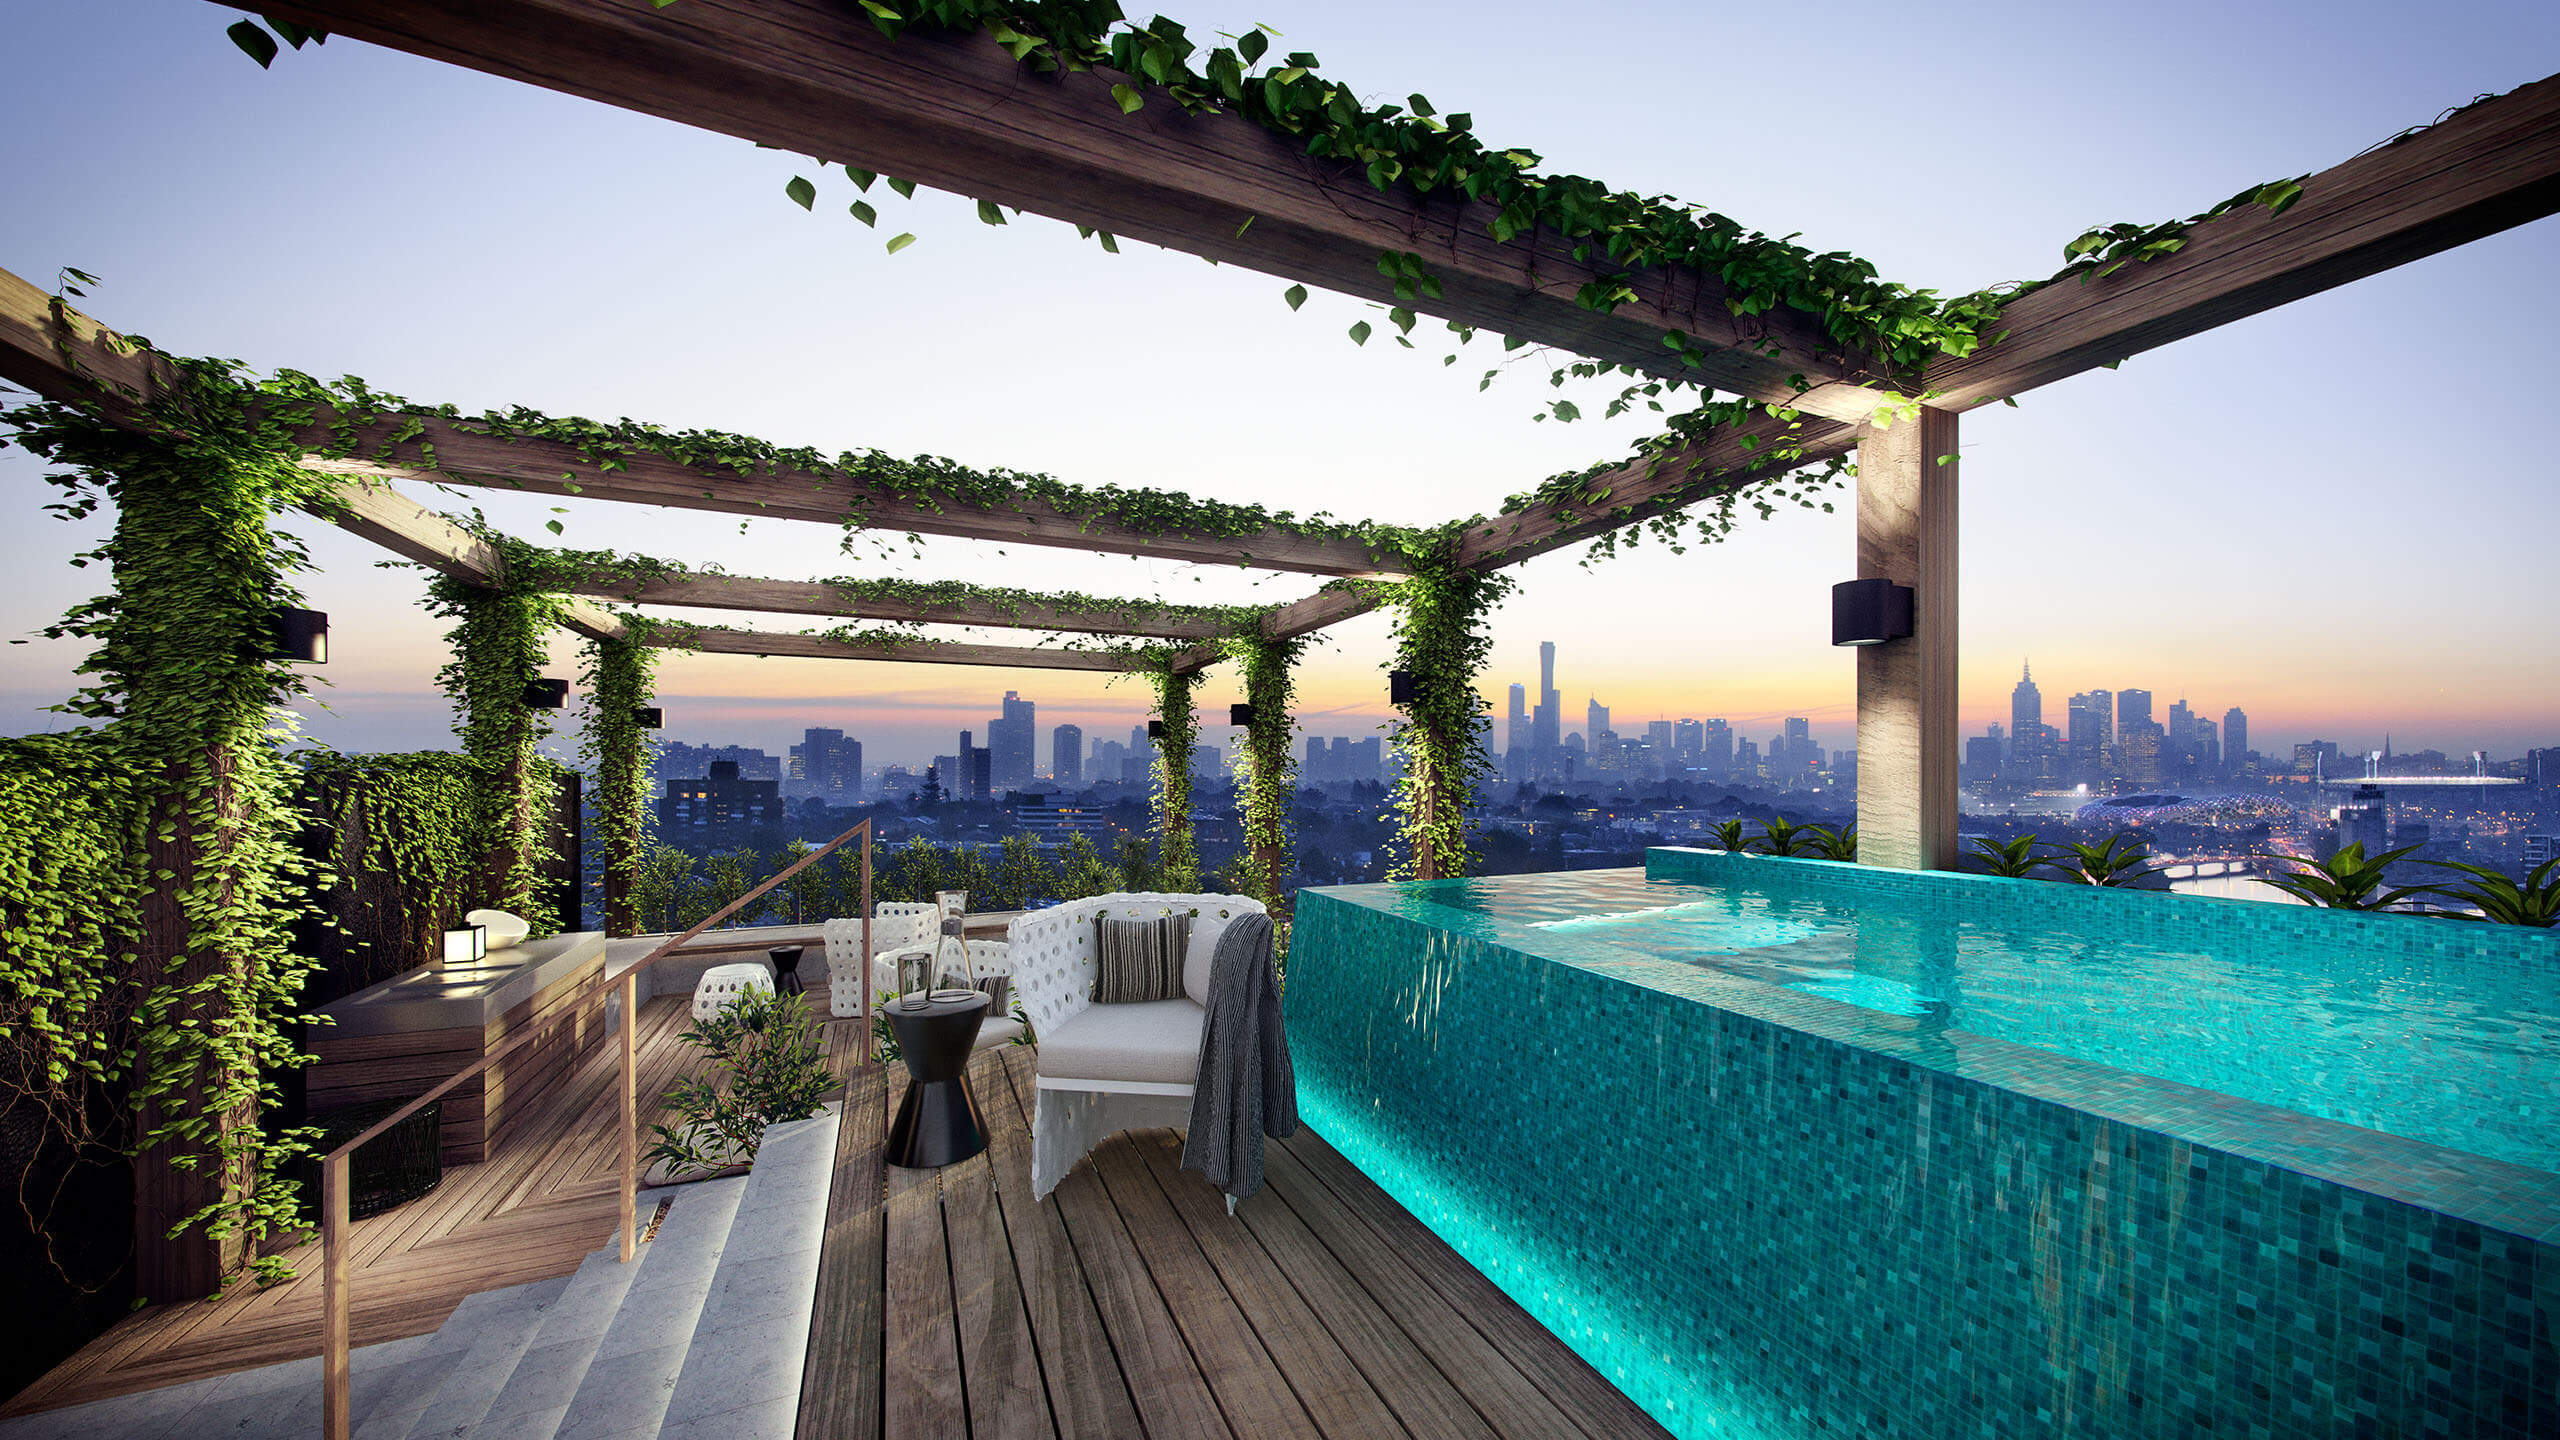 The big showstopper when it comes to outdoor swimming pools